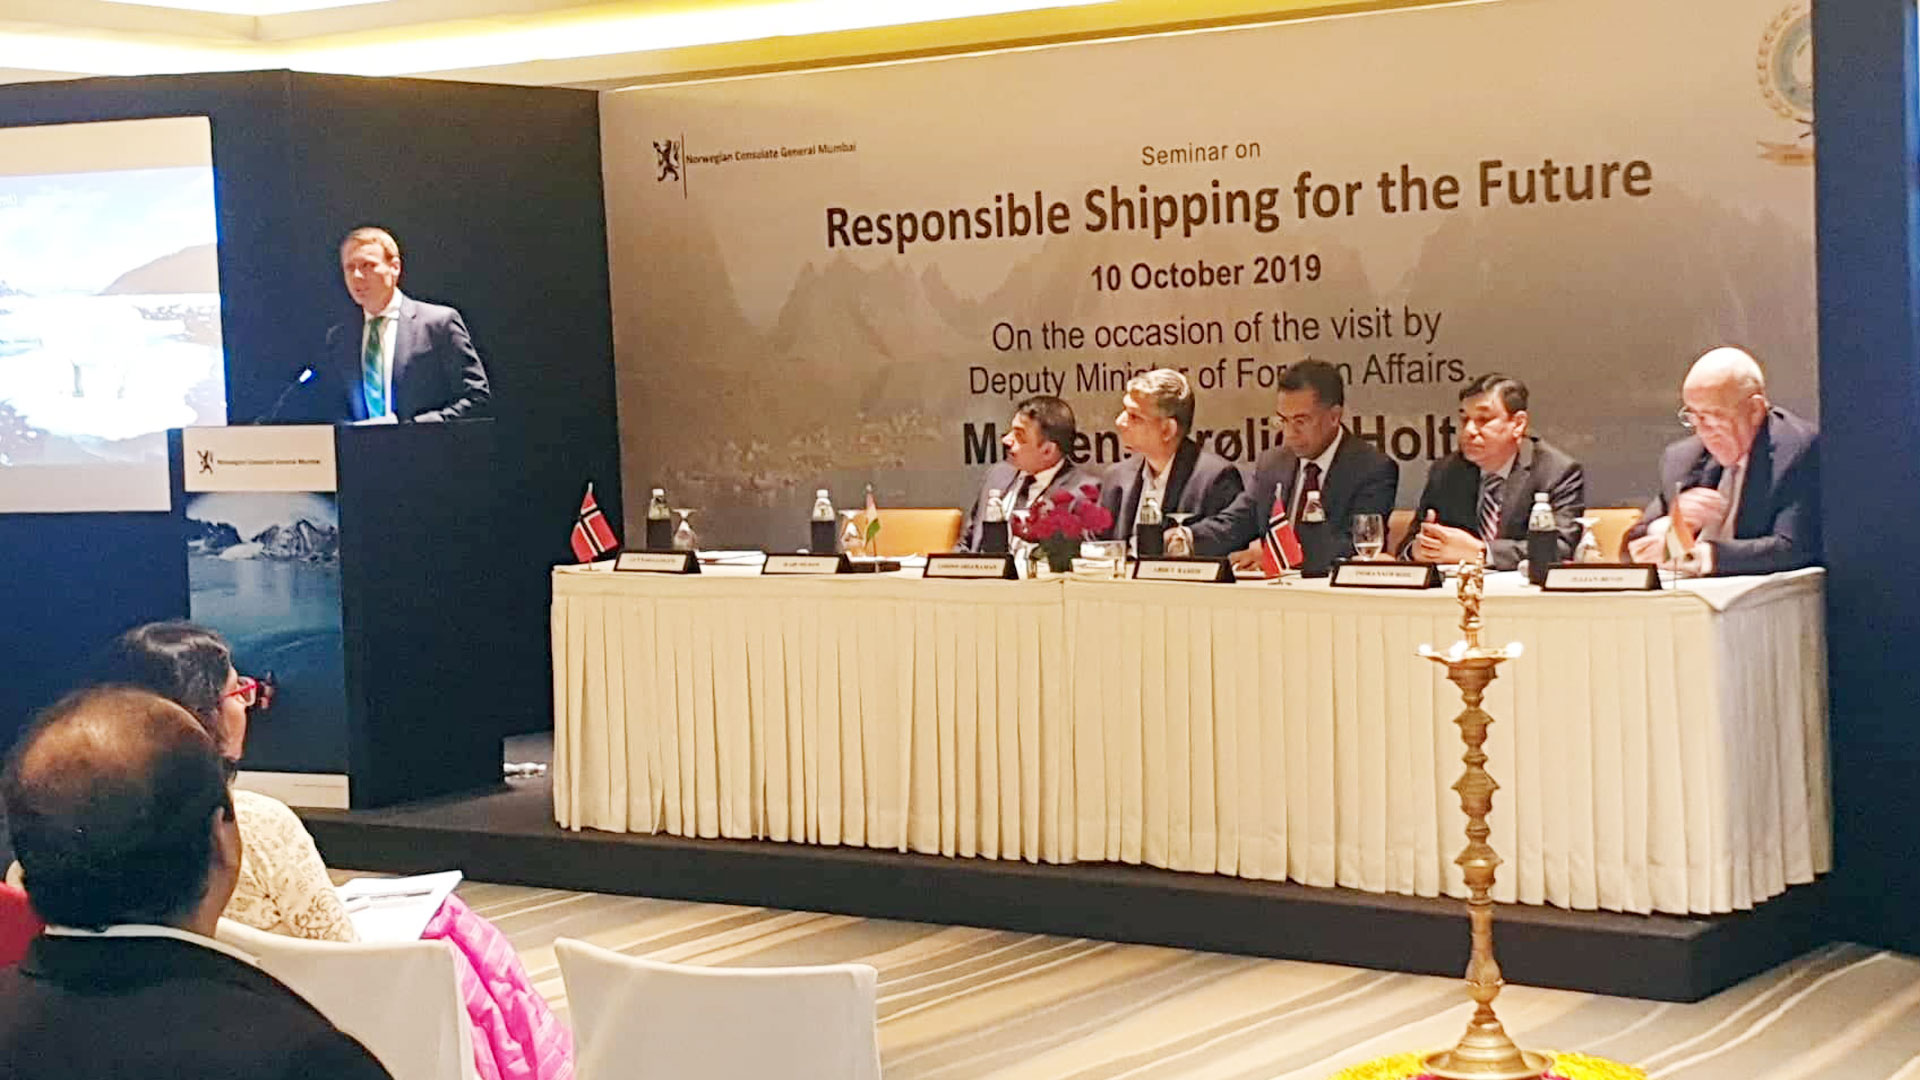 SEMINAR ON RESPONSIBLE SHIPPING FOR THE FUTURE